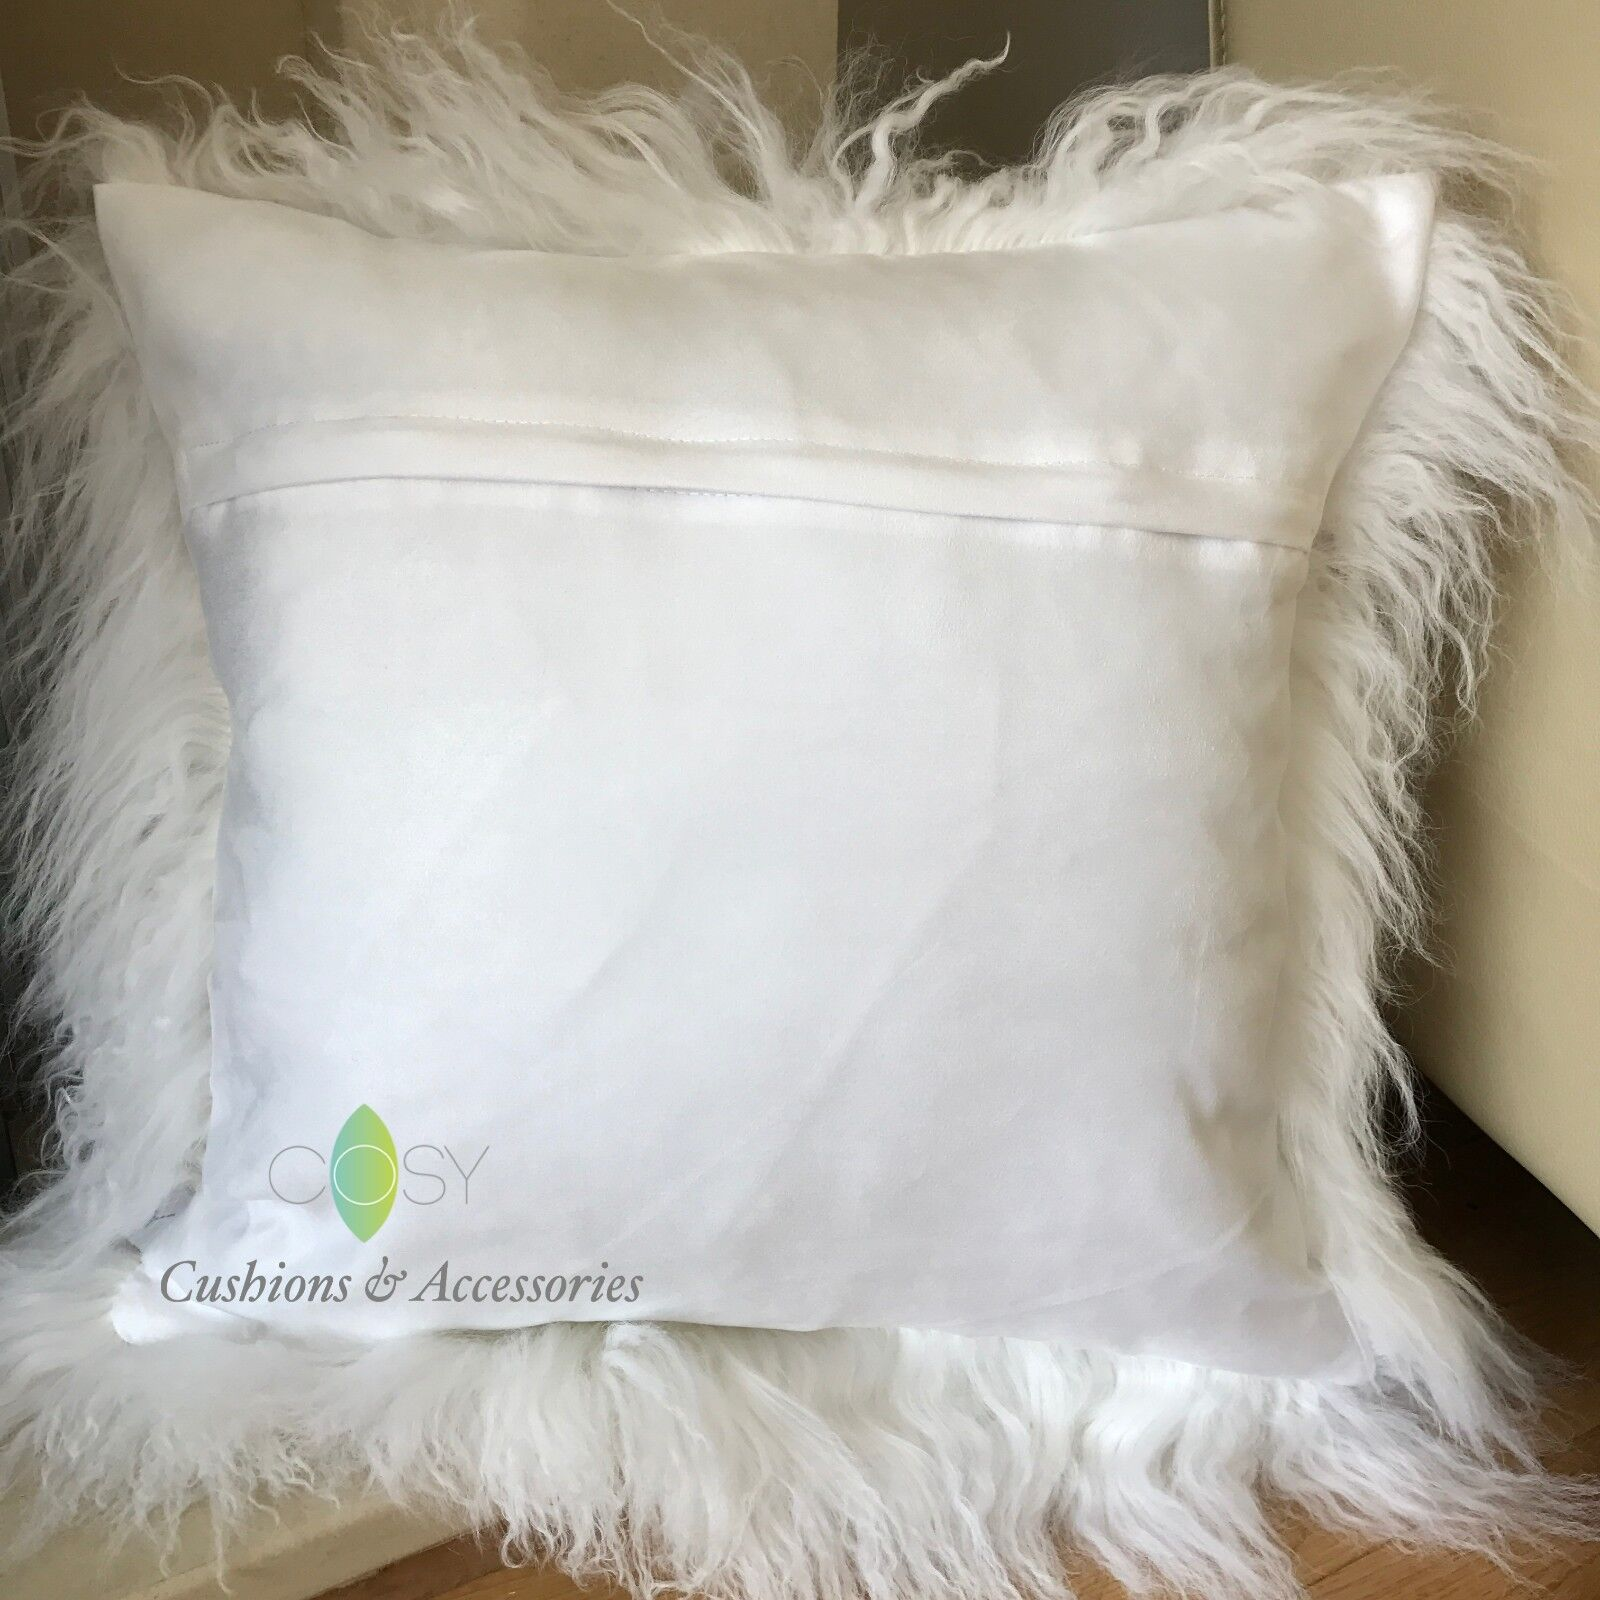 4 Cushion Covers Luxury Super Soft Curly Faux Fur Cover 45x45cm in 3 Colours X4